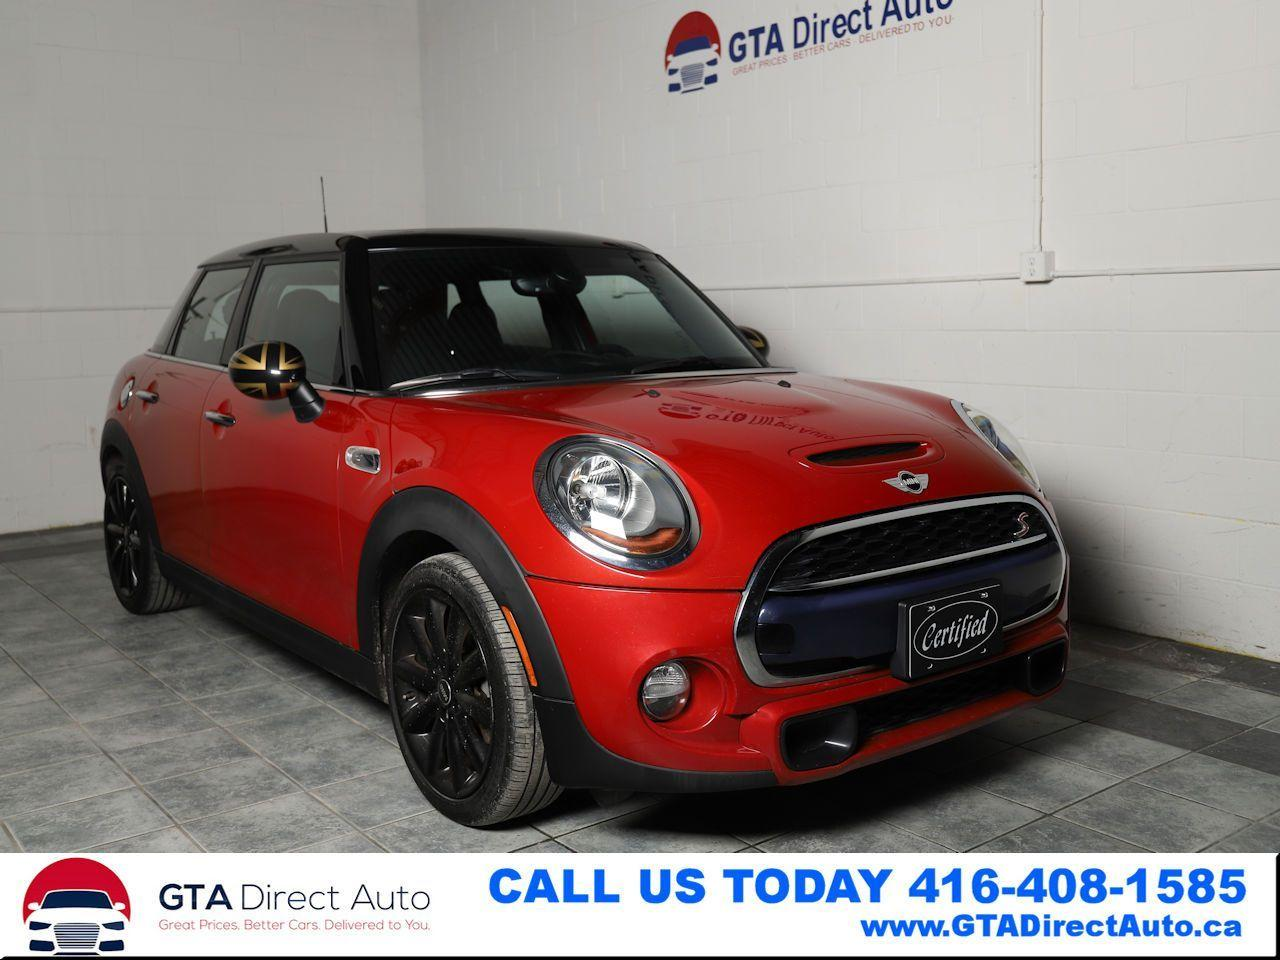 2015 MINI Cooper S S TurboCharged Panroof 4Door KeyGo Auto Certified